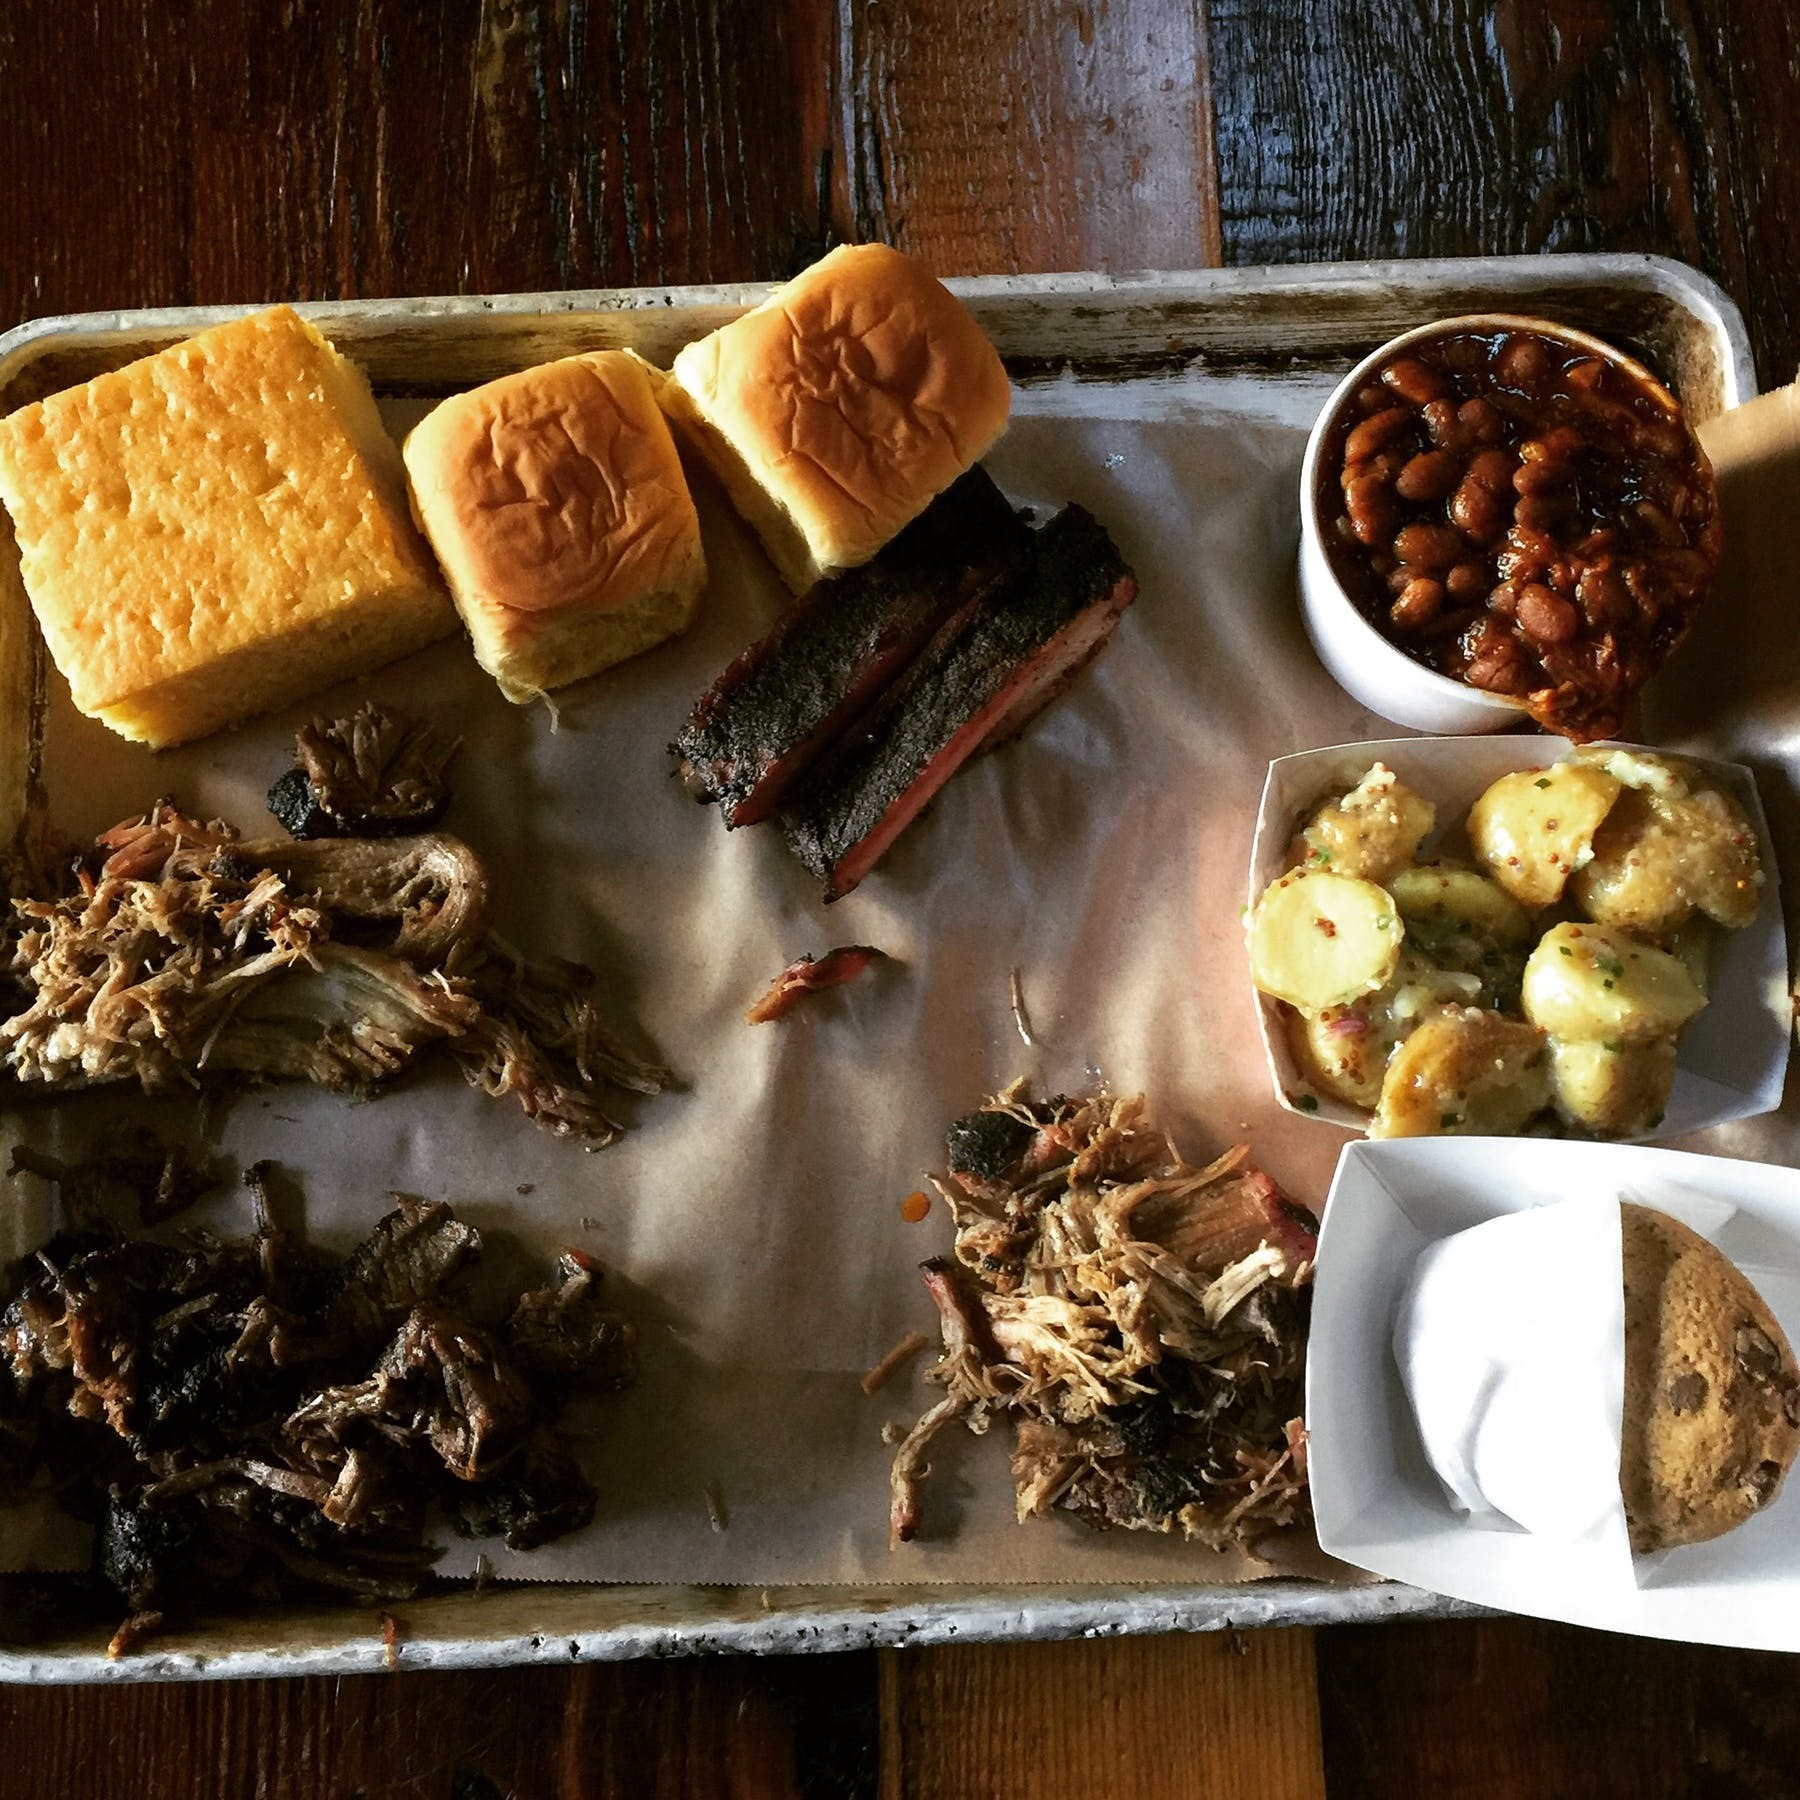 plate of barbecue meats and corn bread